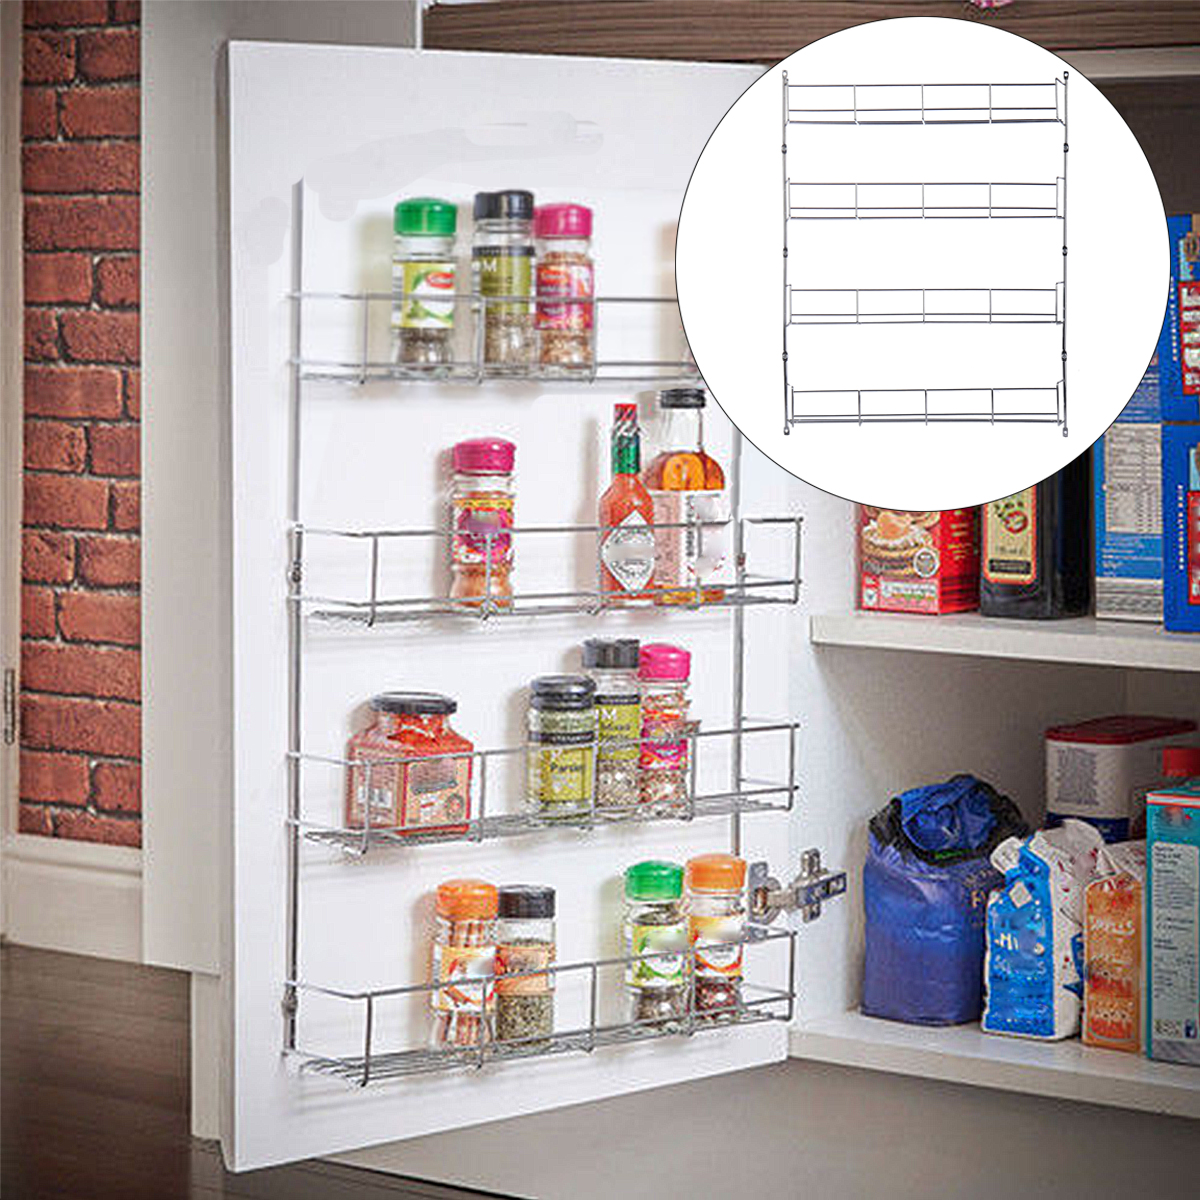 4 Tiers Kitchen Spice Jar Rack Cabinet Organizer Wall Mount Storage Shelf Bracket Holder